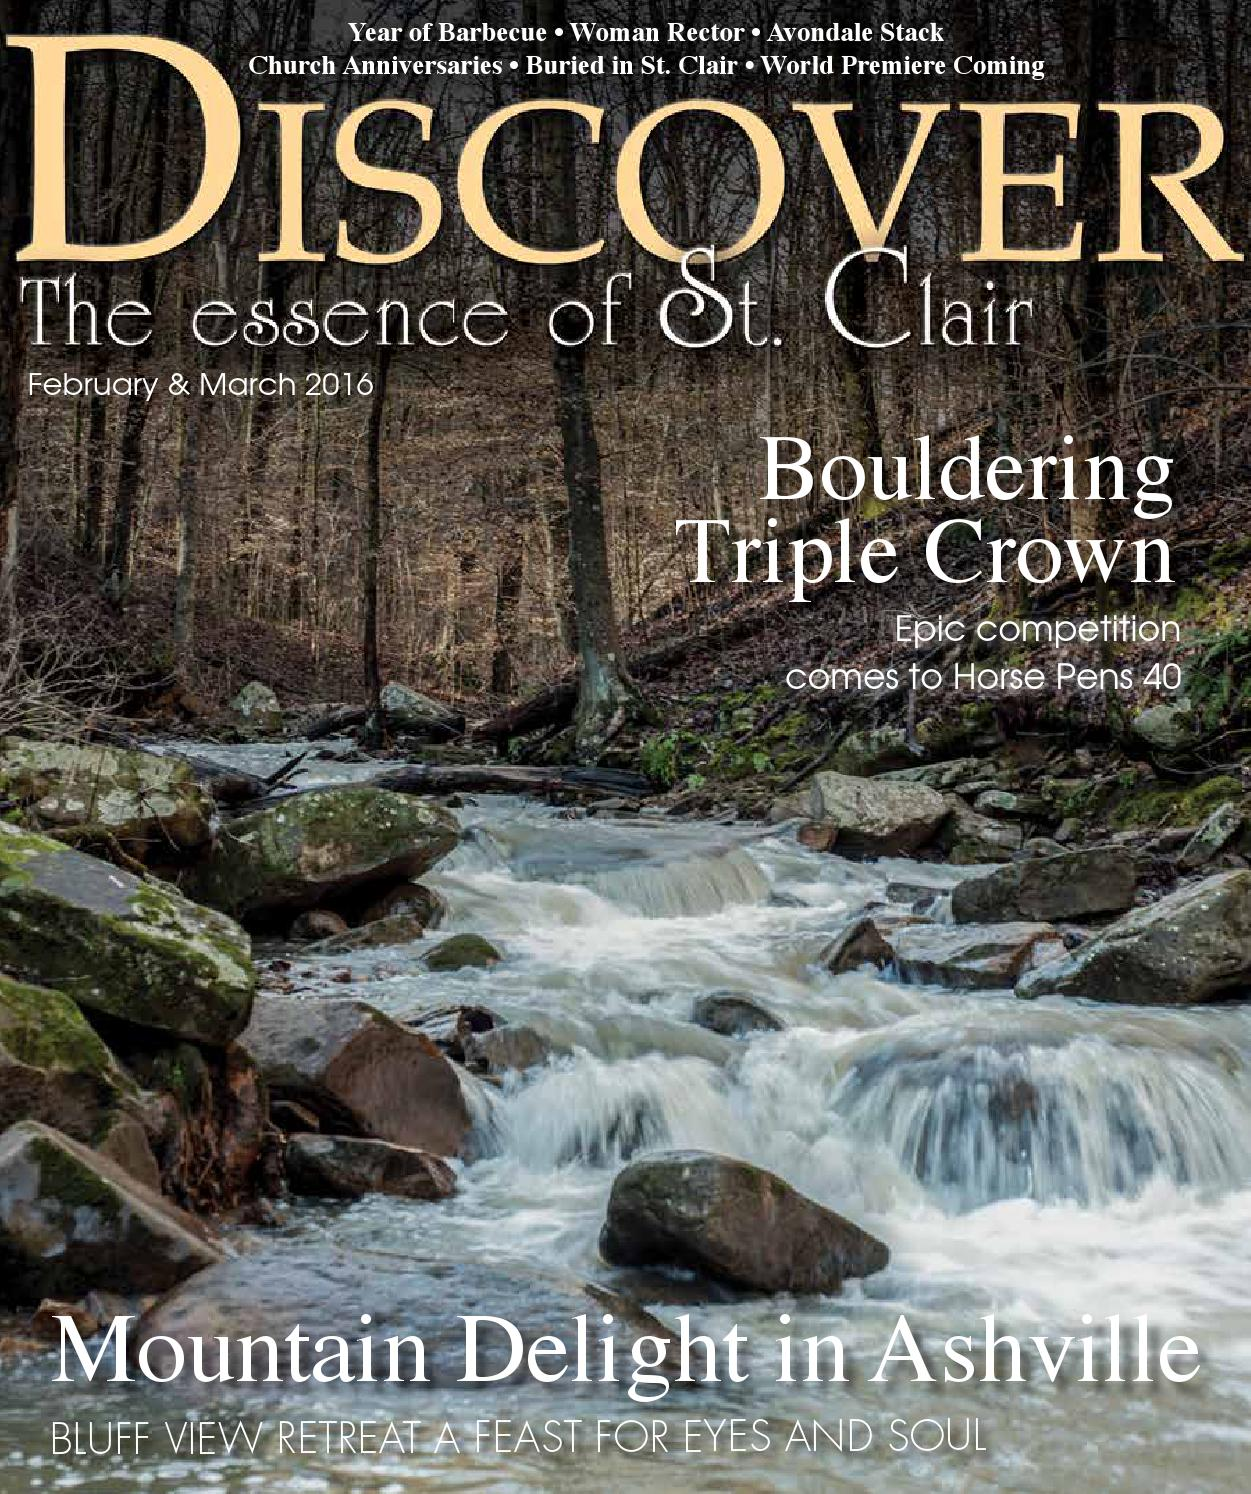 Alabama saint clair county odenville - Discover St Clair February March 2016 By Discover The Essence Of St Clair Issuu